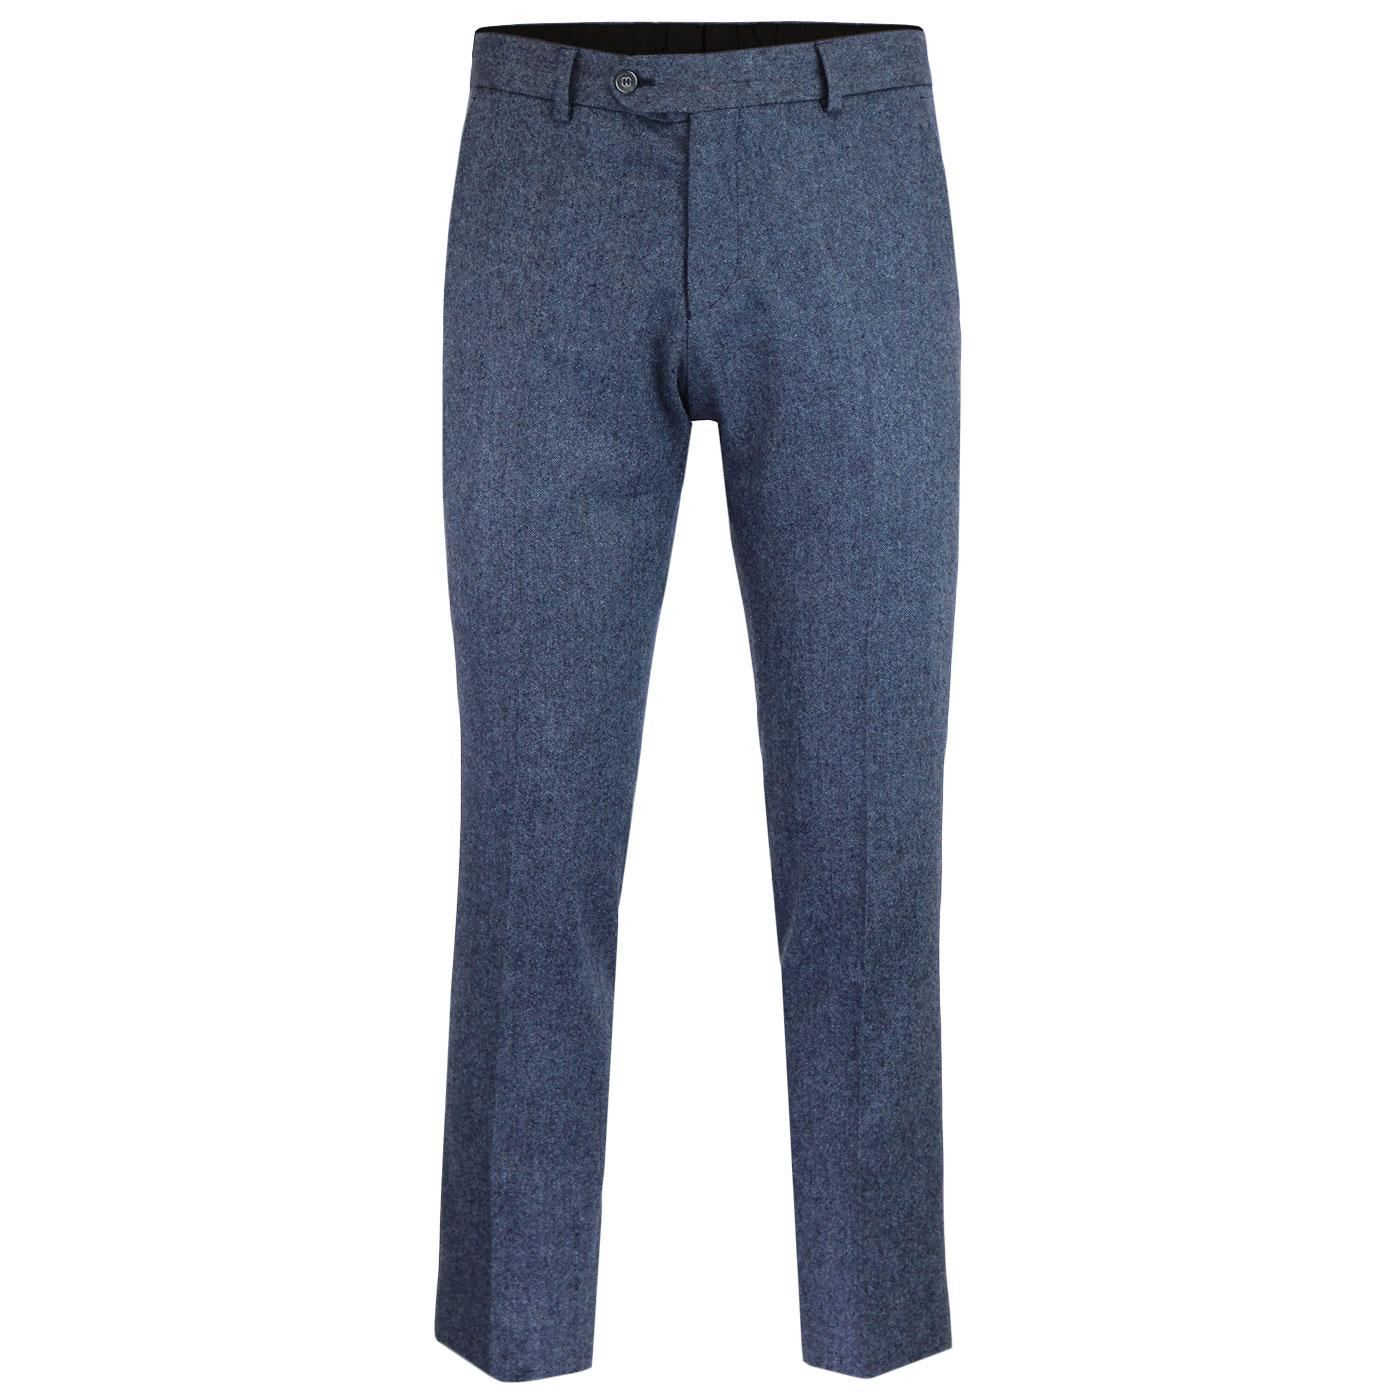 Men's Retro Mod Slim Blue Donegal Suit Trousers